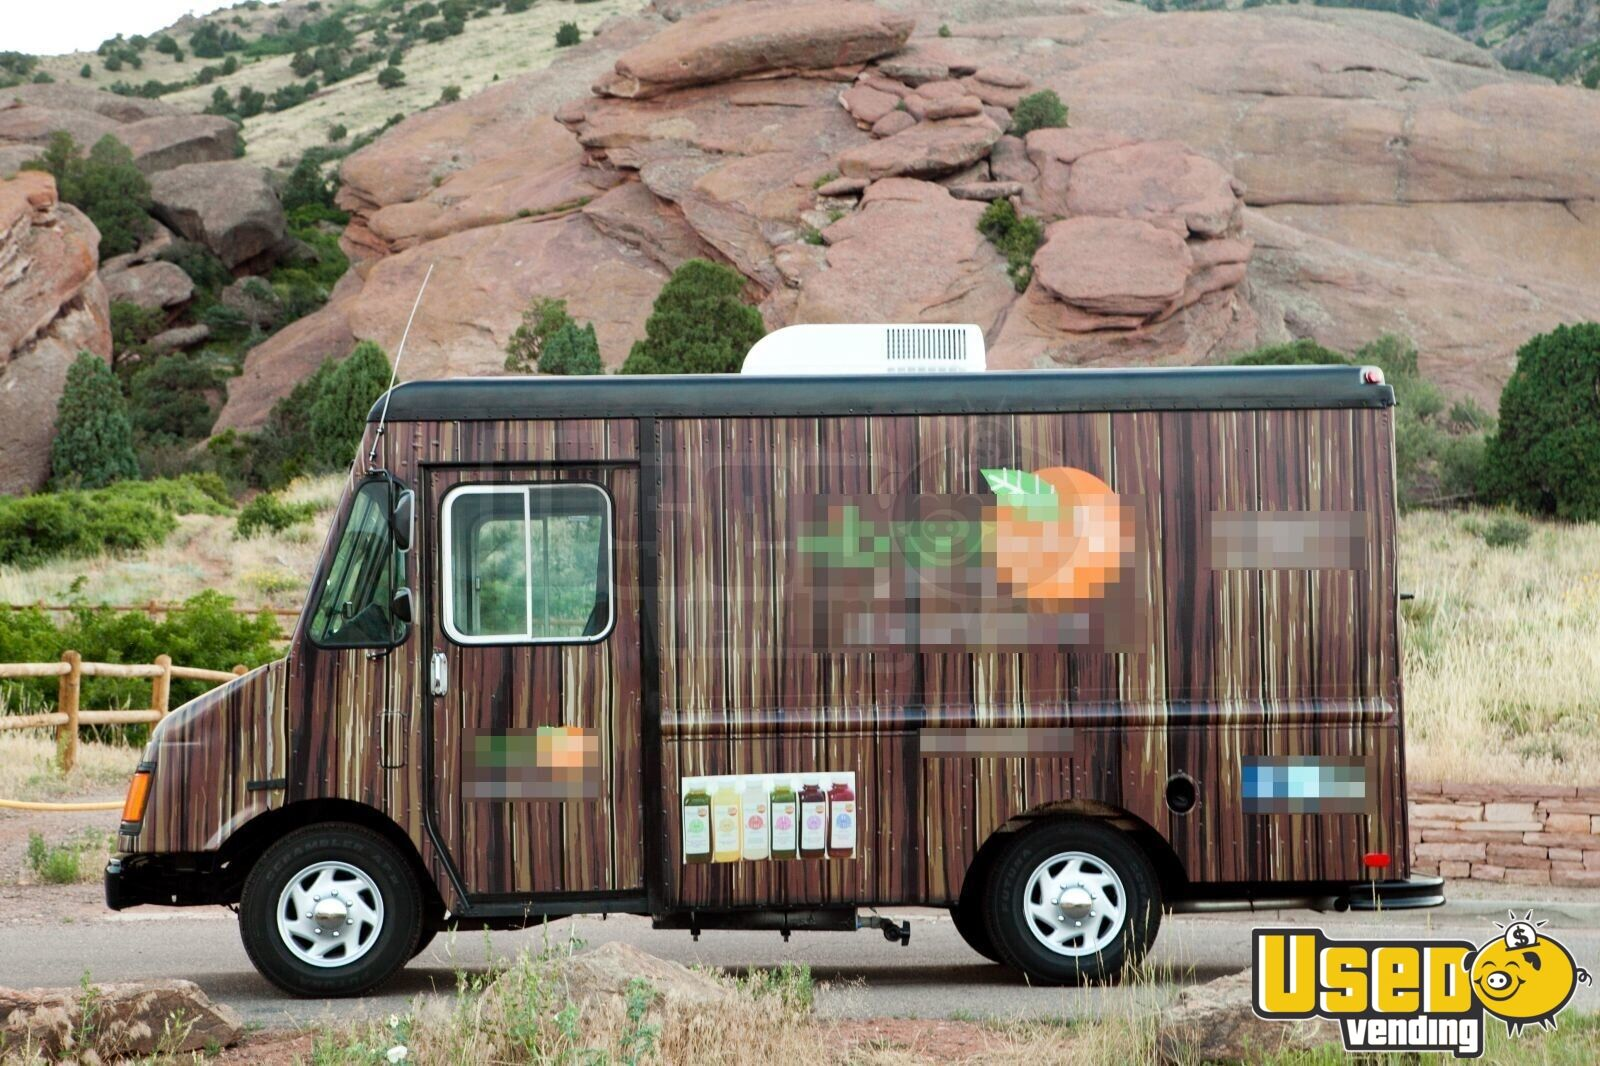 1993 Chevy P30 Juice Truck Food Smoothie Truck For Sale In Colorado